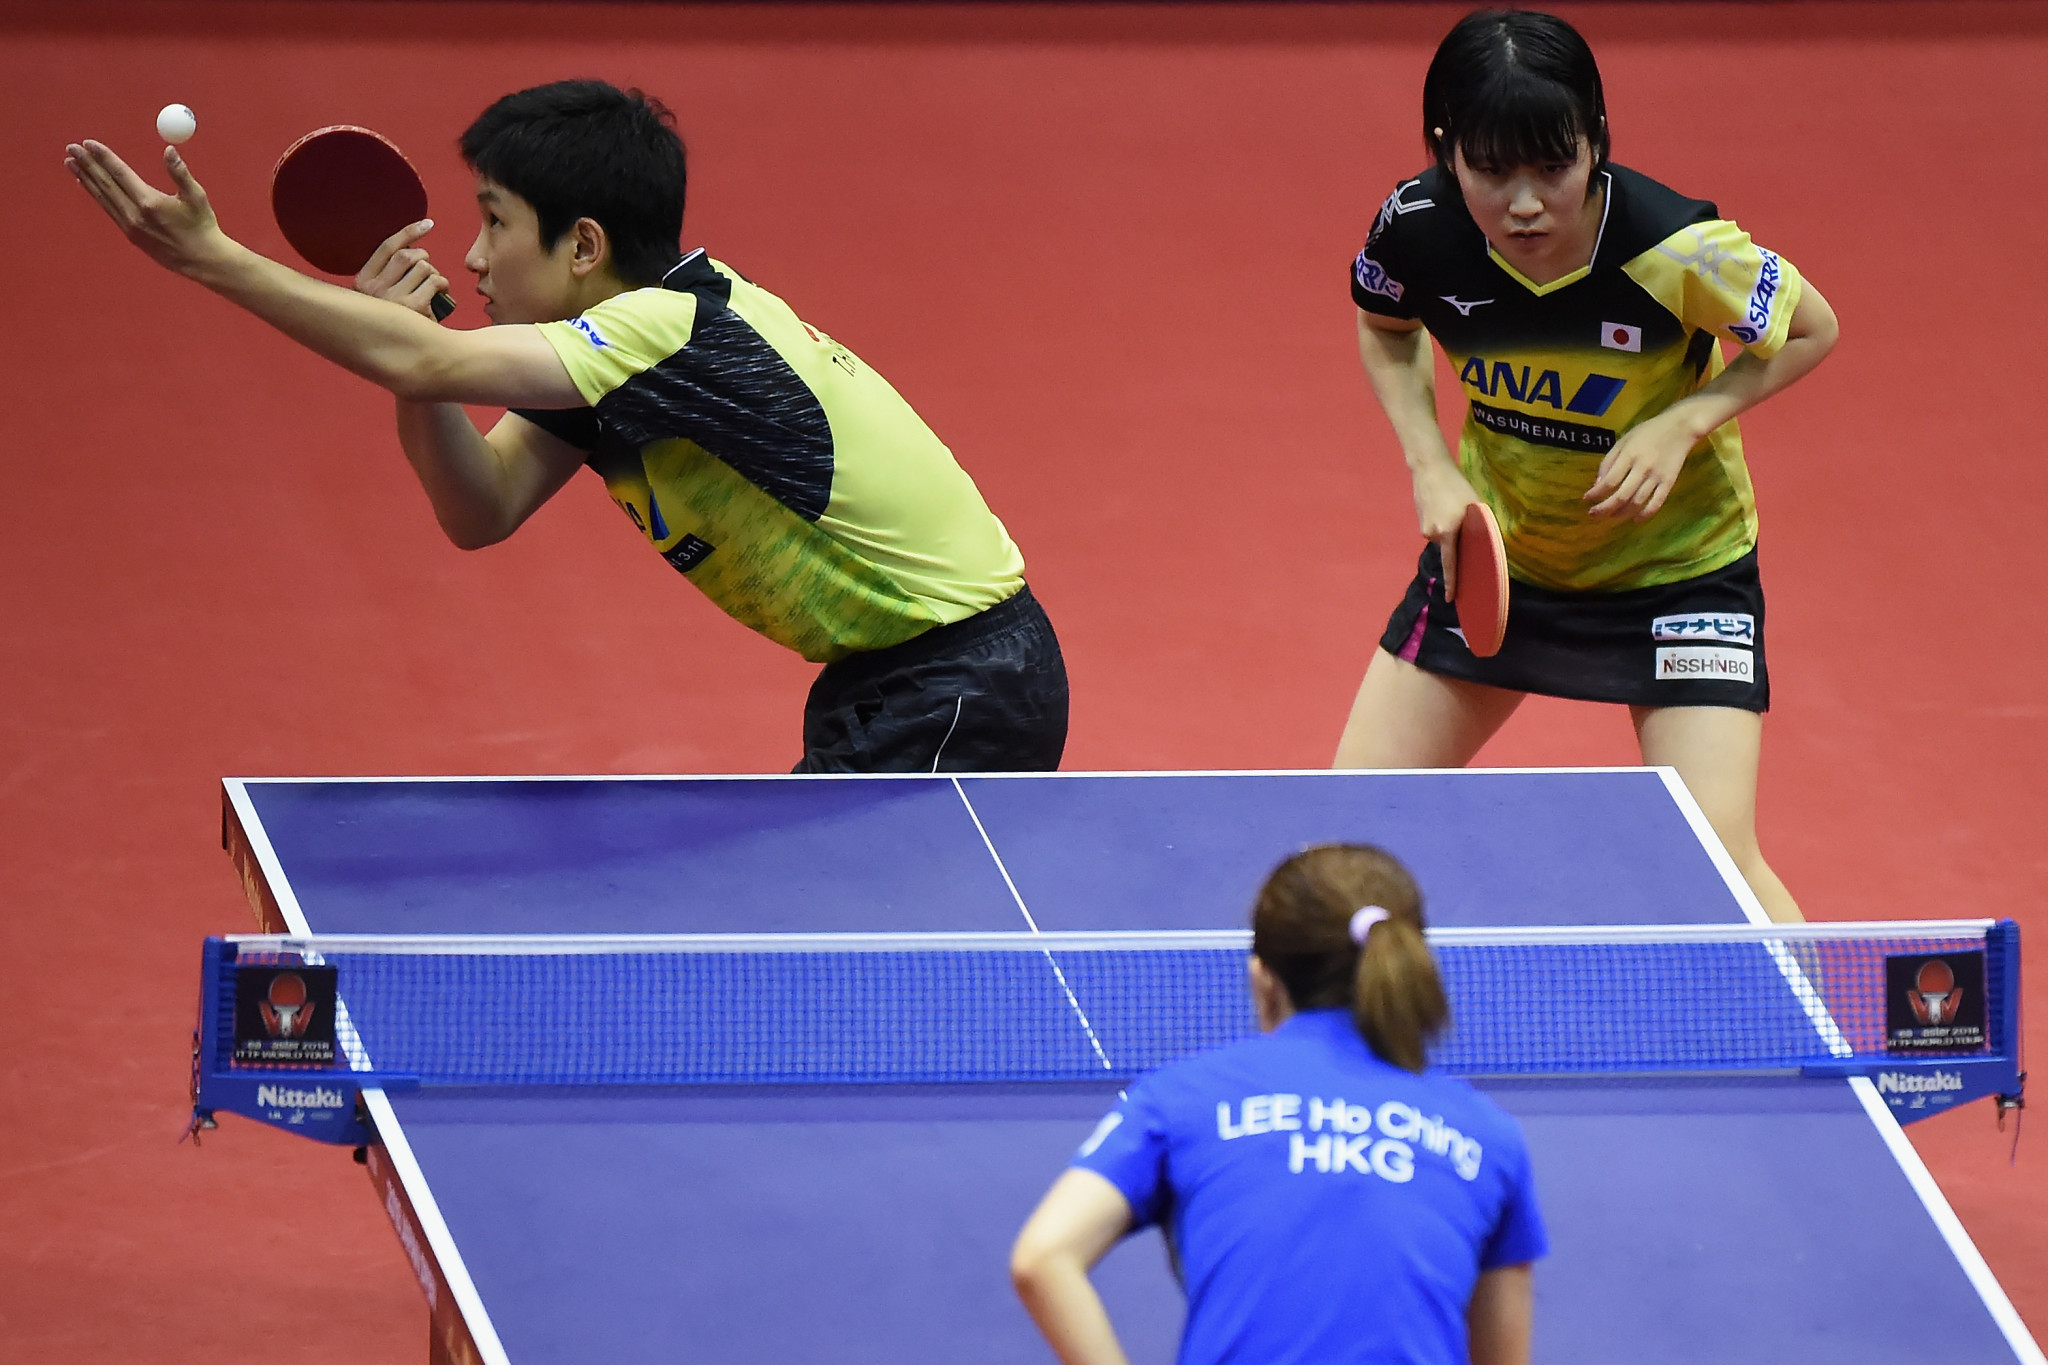 ITTF postpone events in China and Hong Kong due to coronavirus crisis